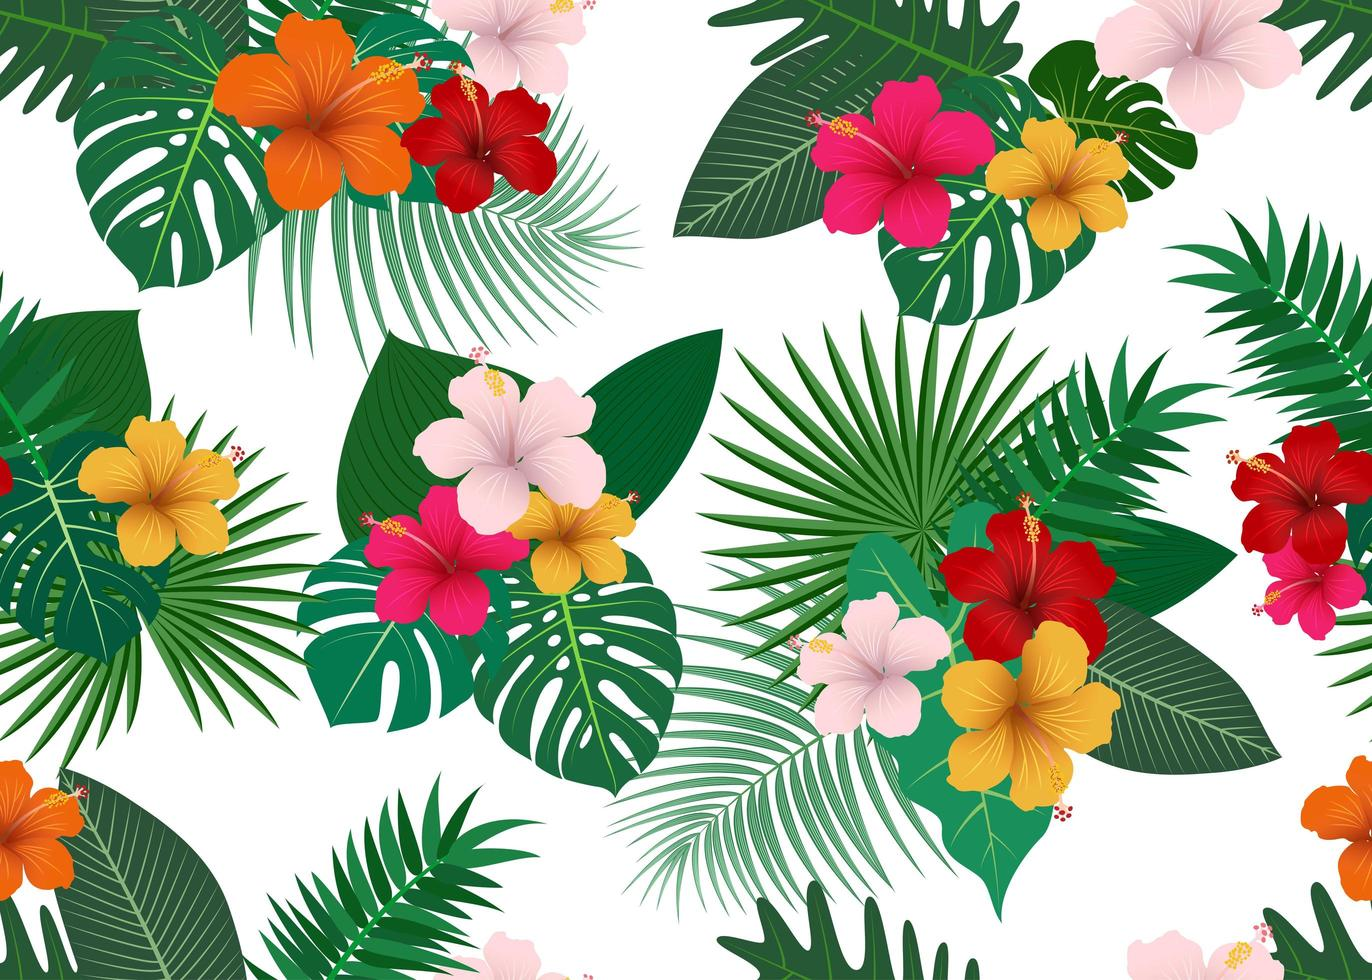 Seamless Pattern Of Tropical Flowers With Leaves On White